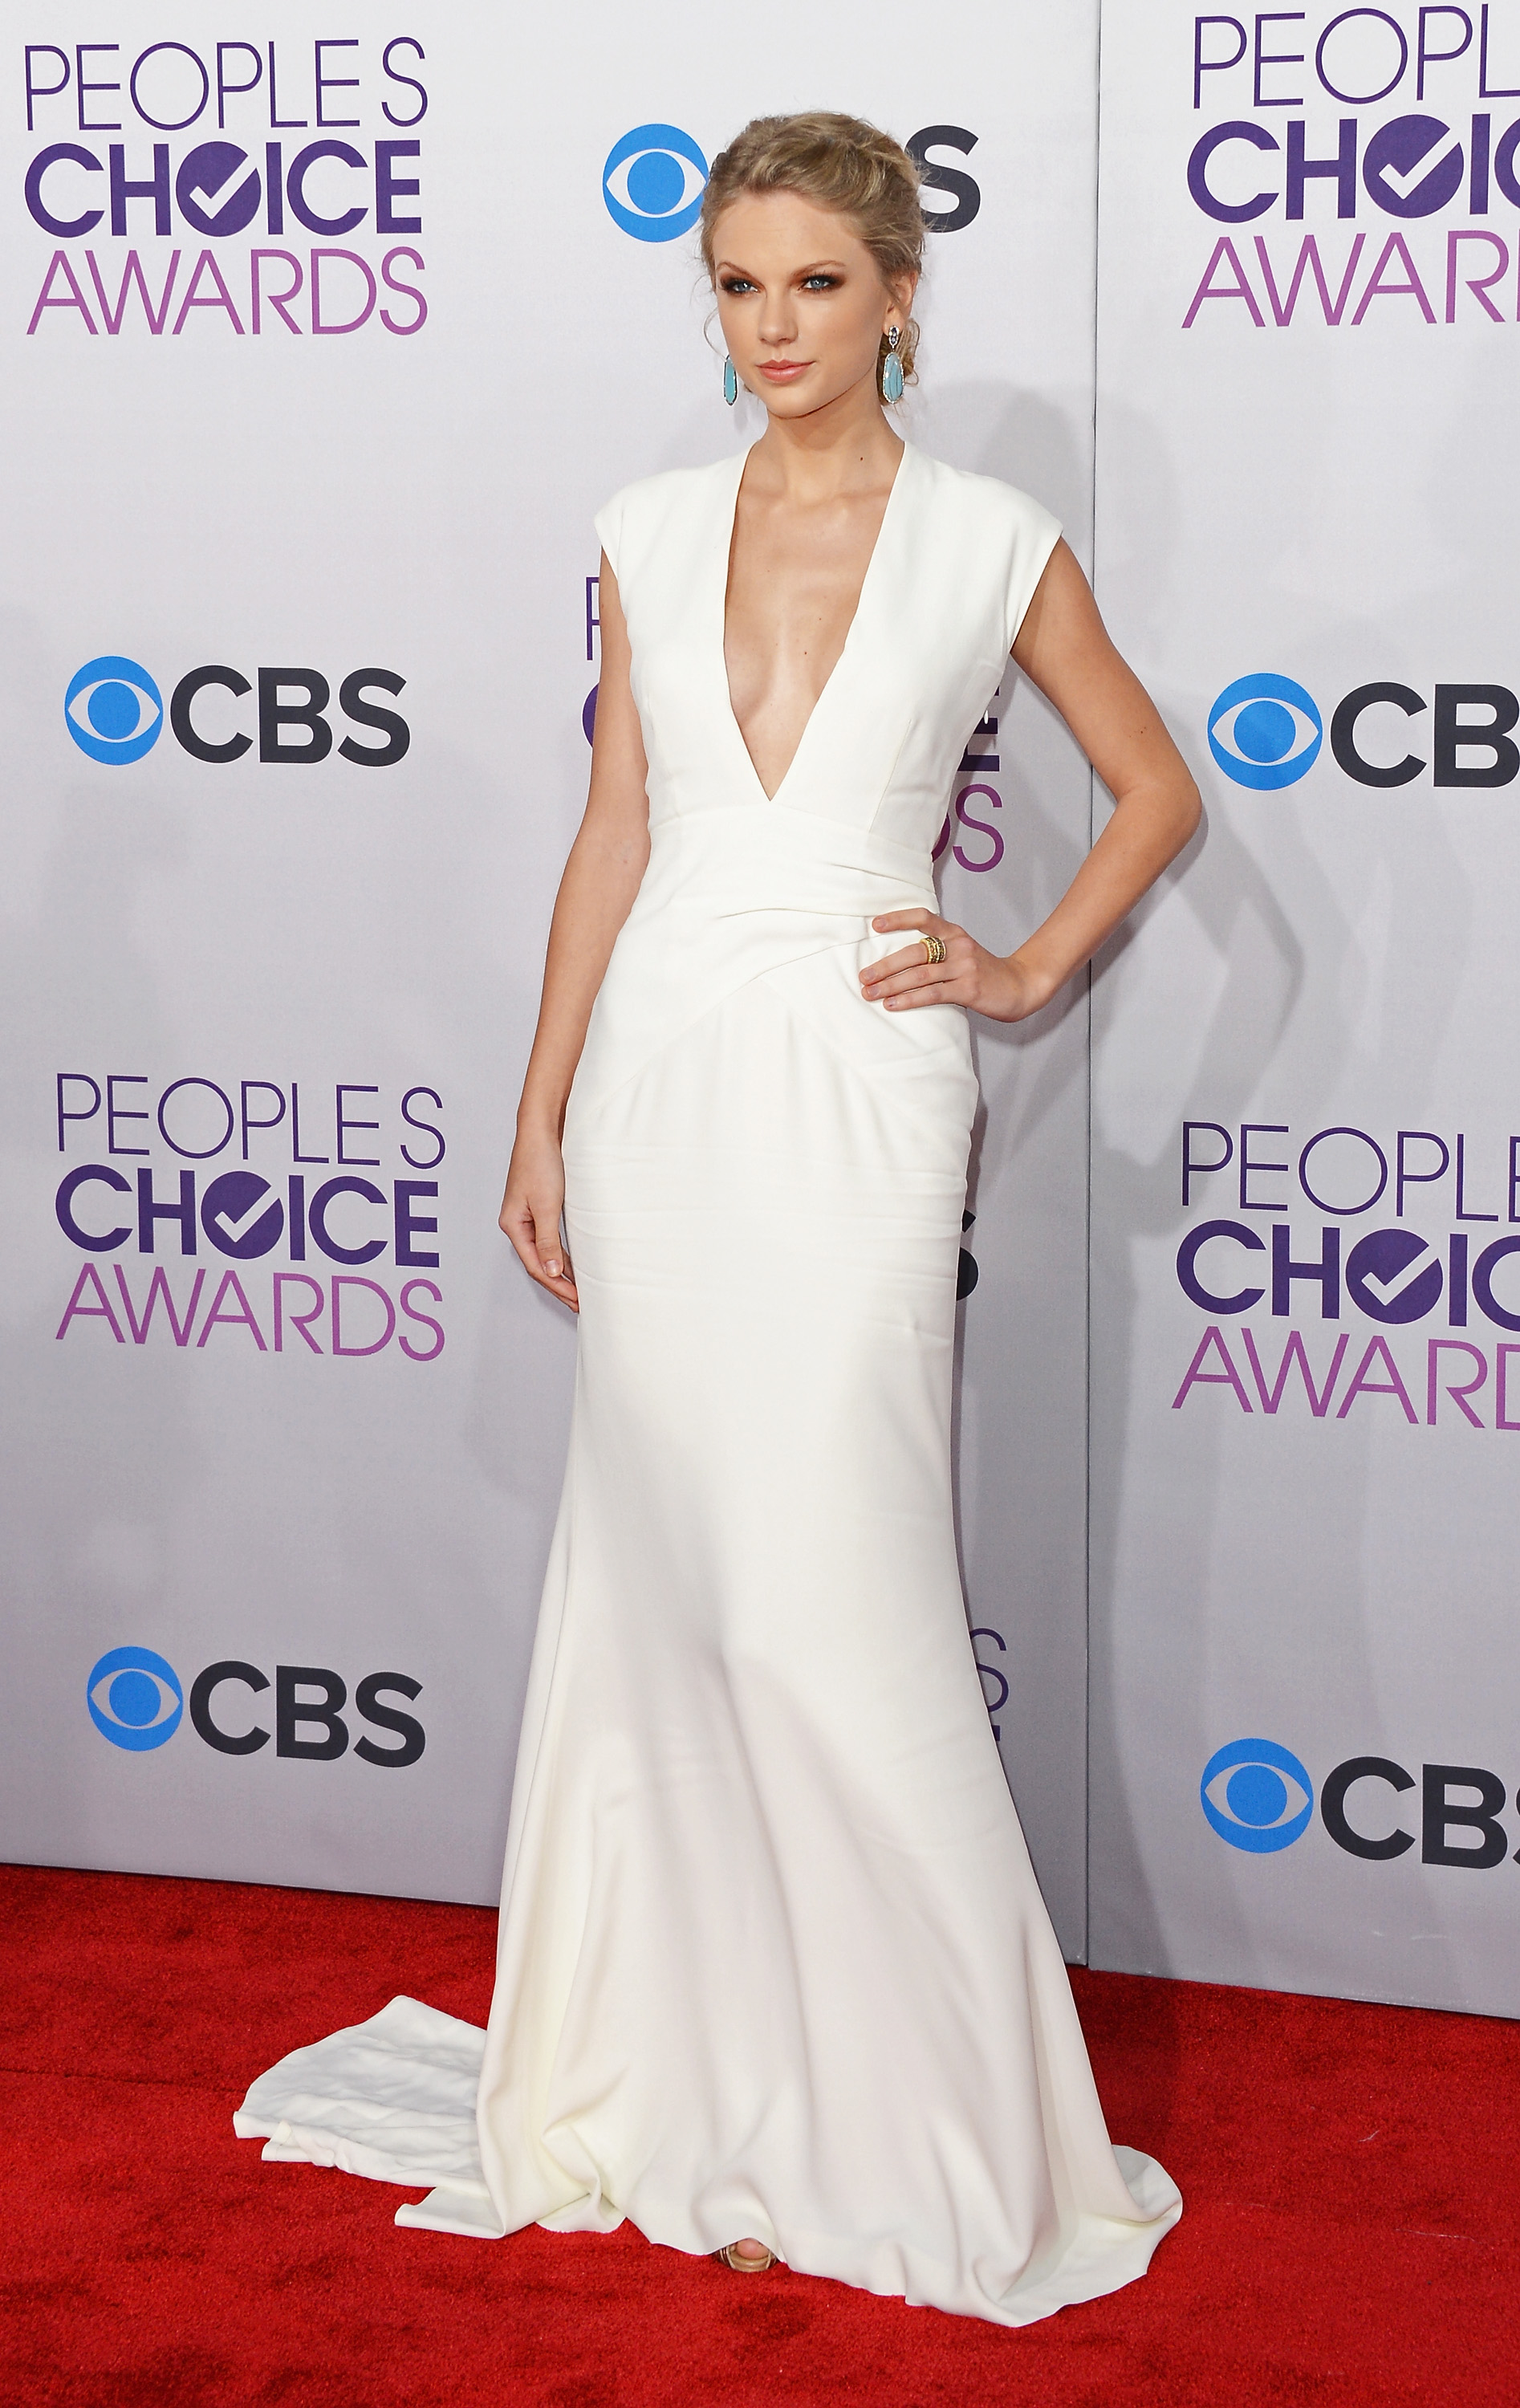 The People's Choice Awards 2013: The Best, Worst, And Everything In-Between